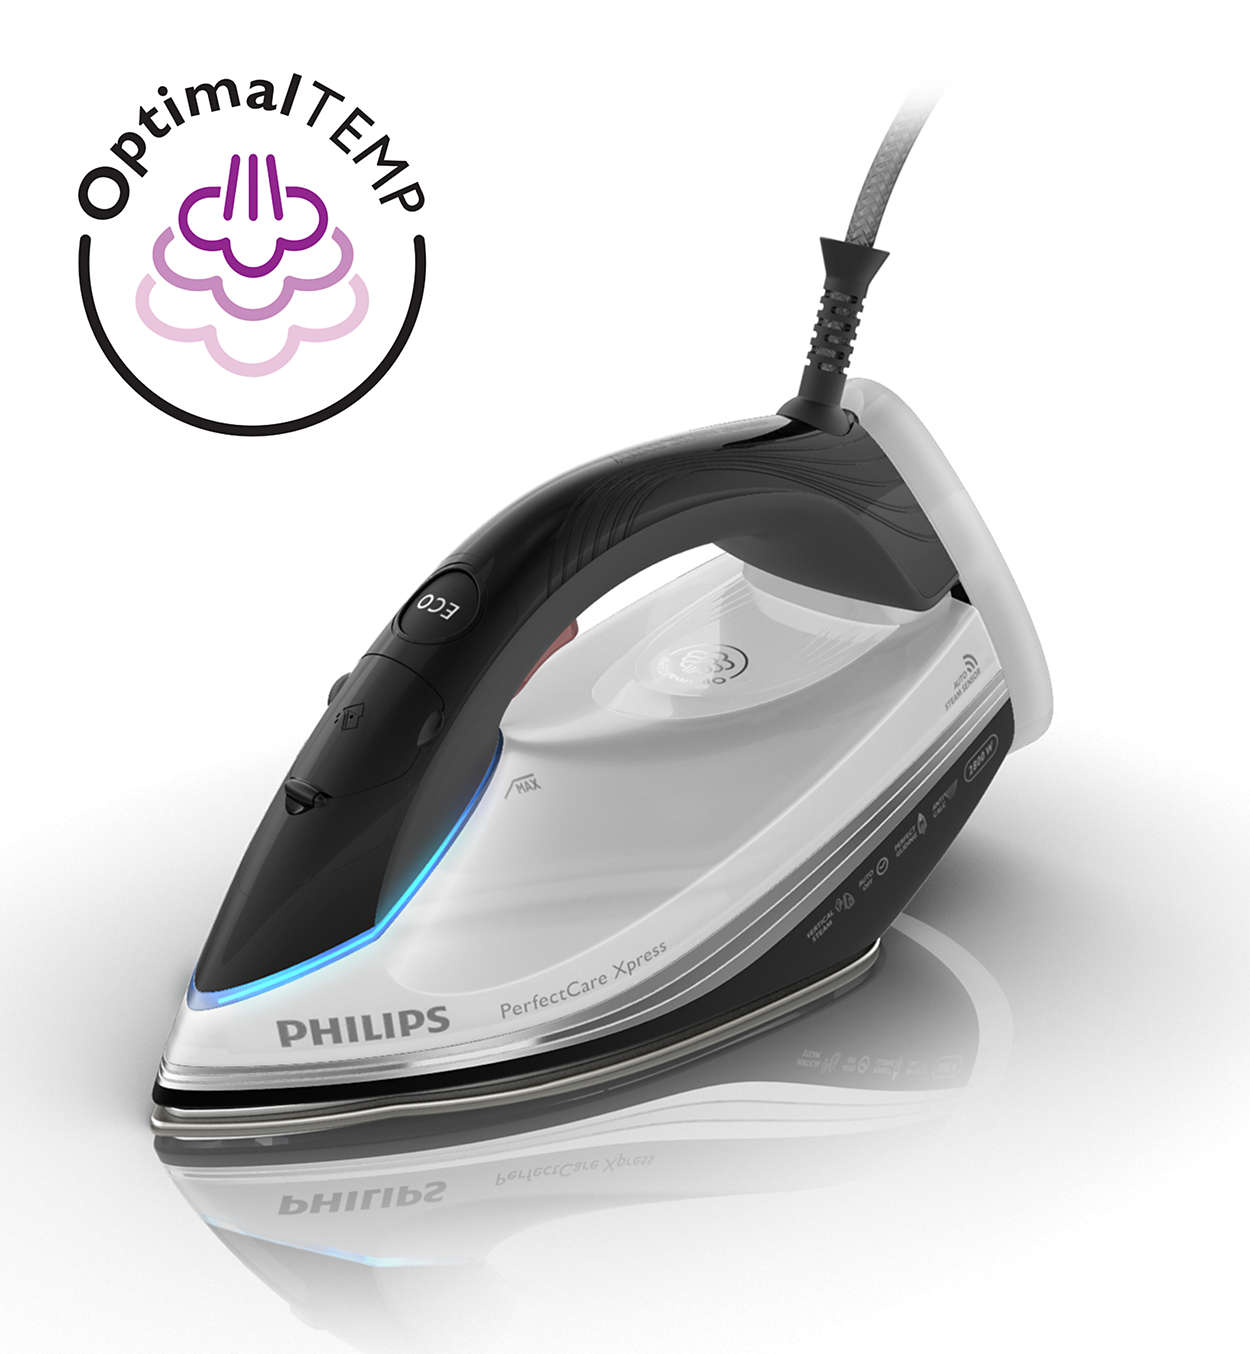 perfectcare xpress pressurised steam iron gc5060 02 philips. Black Bedroom Furniture Sets. Home Design Ideas